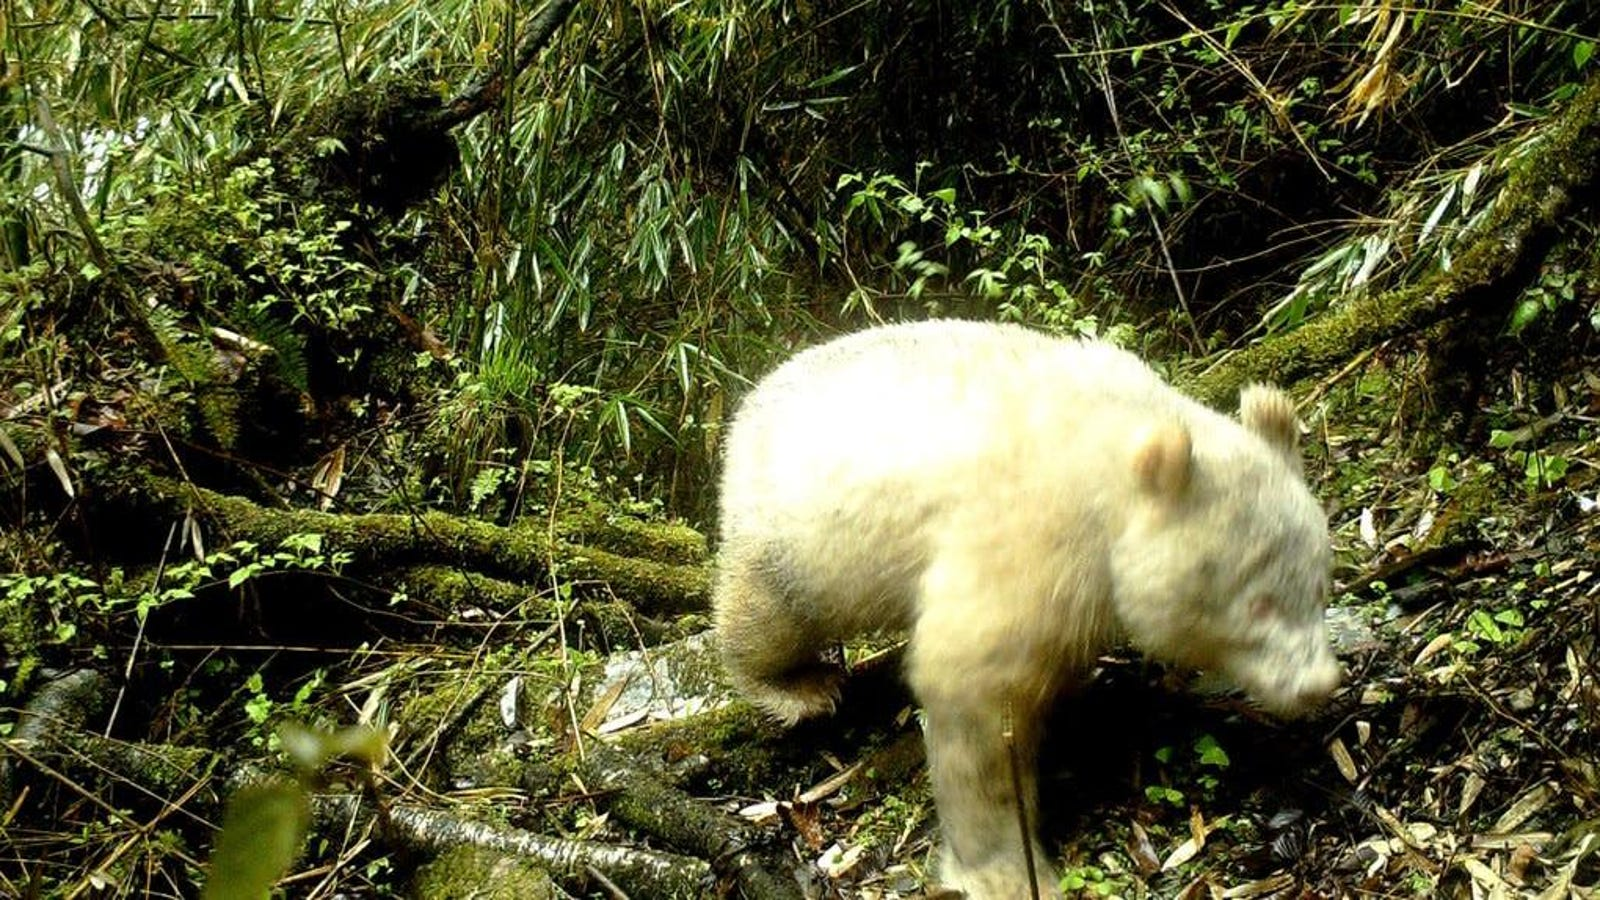 Camera Trap Snaps Photo of First Known Albino Giant Panda